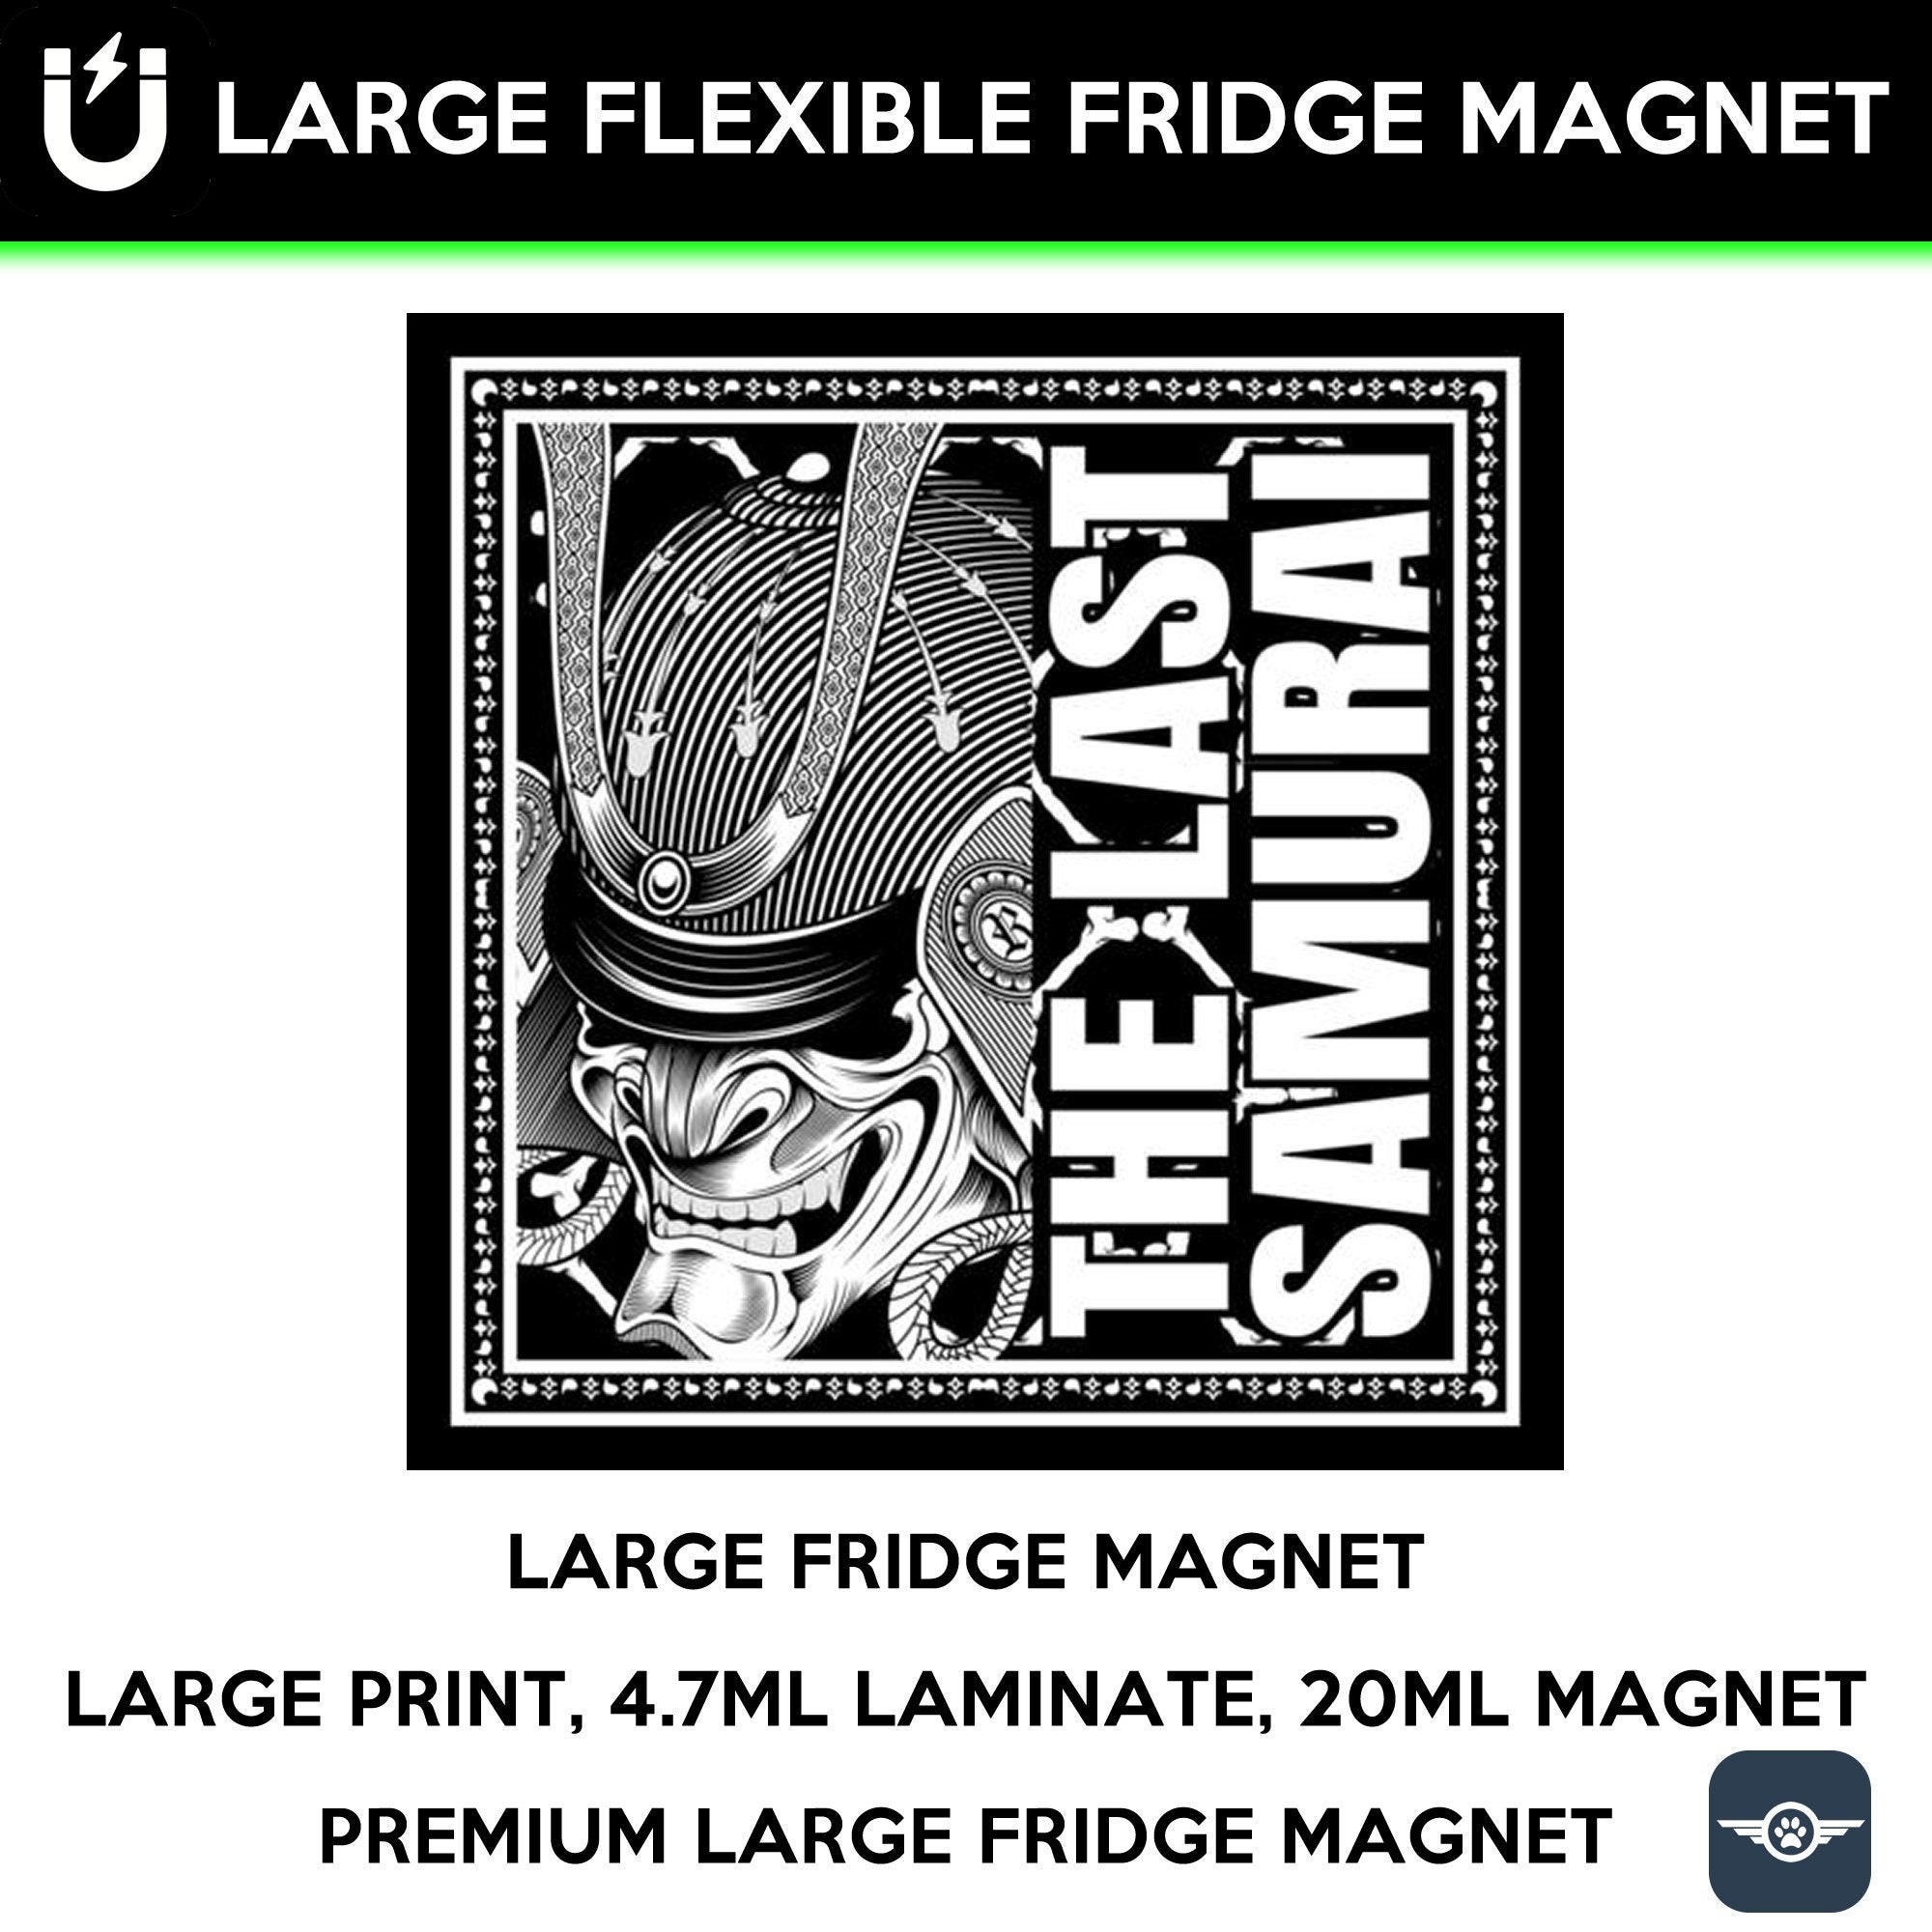 The last samurai large fridge magnet, large 6 1/2 x 6 1/2 inch premium fridge magnet that stands out.